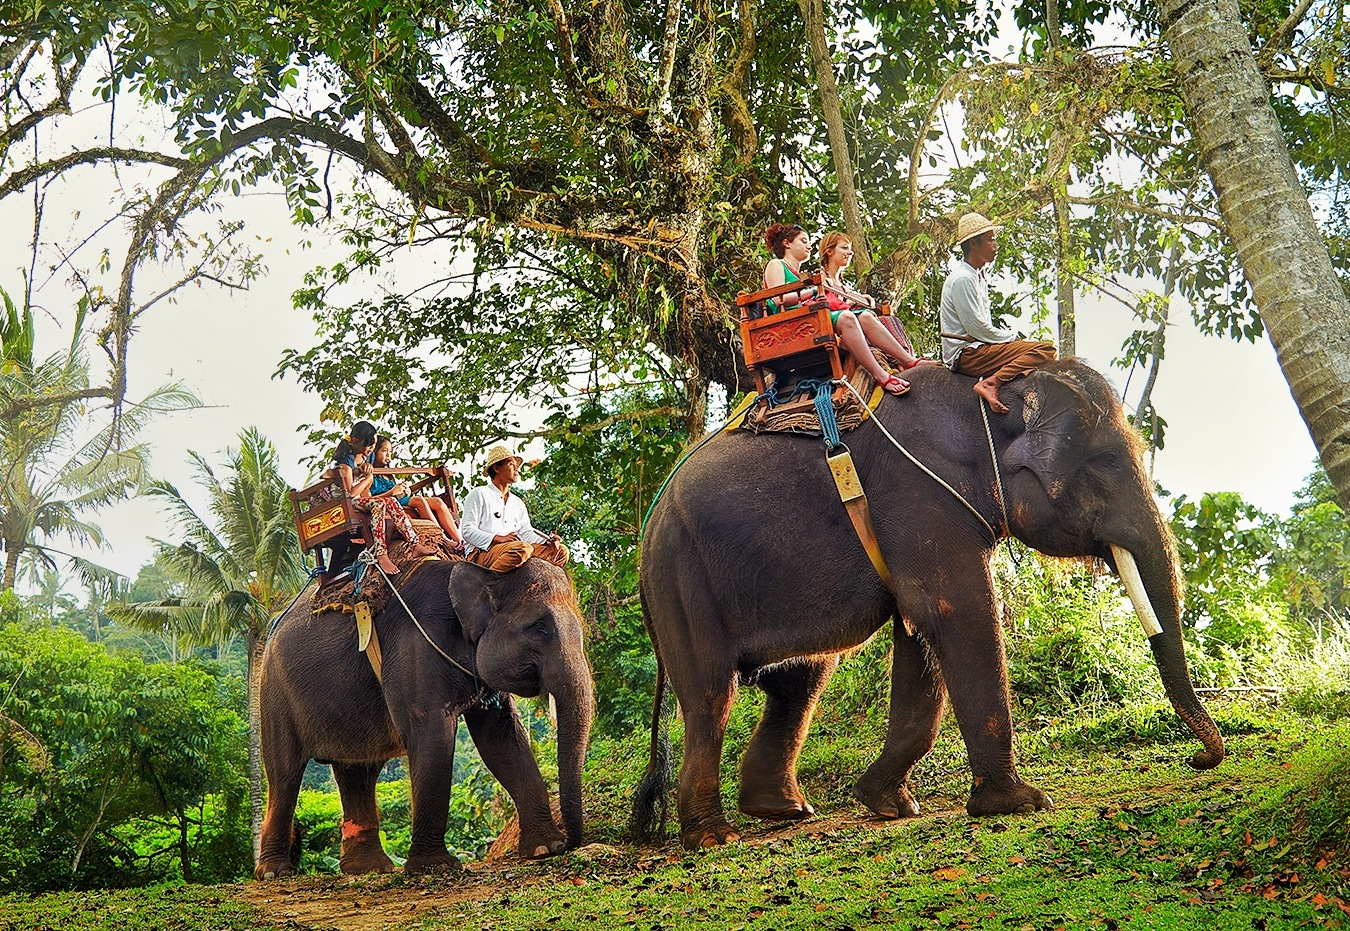 Long Trek Exclusive Elephant Safari at the Bali Zoo Including Hotel Transfer and Lunch